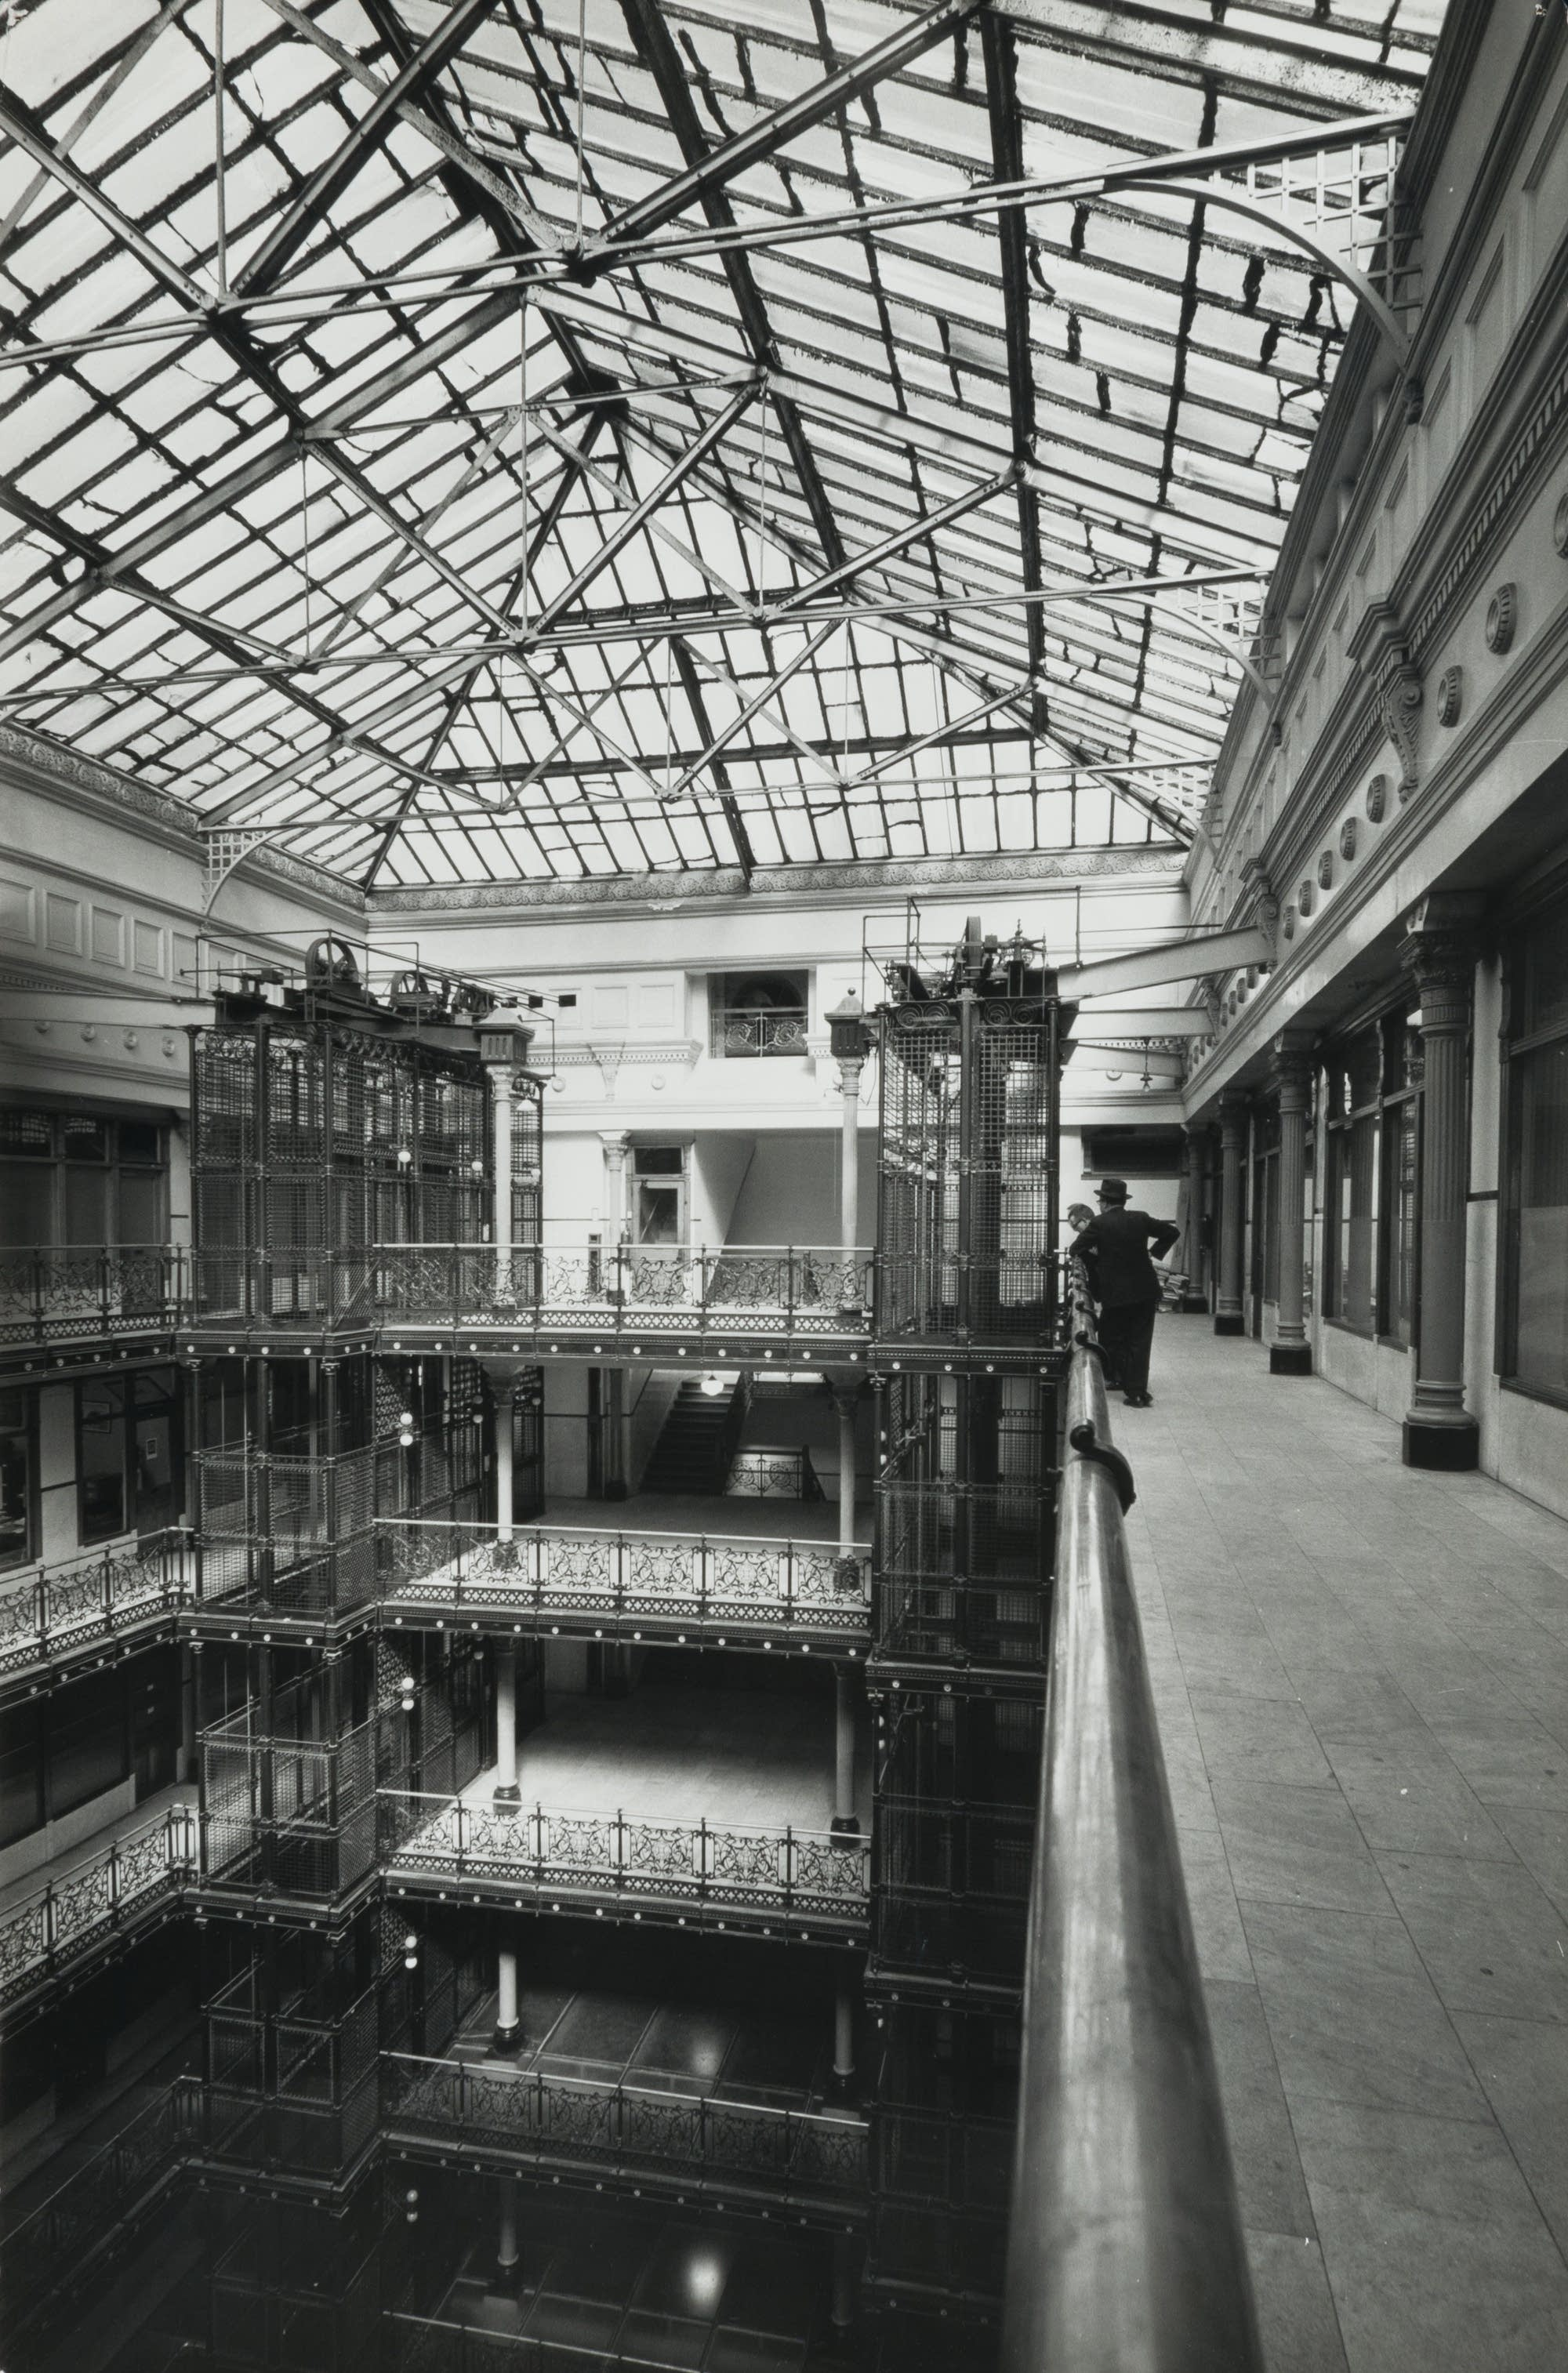 Skylight from the 12th floor of the Metropolitan Building, 1961